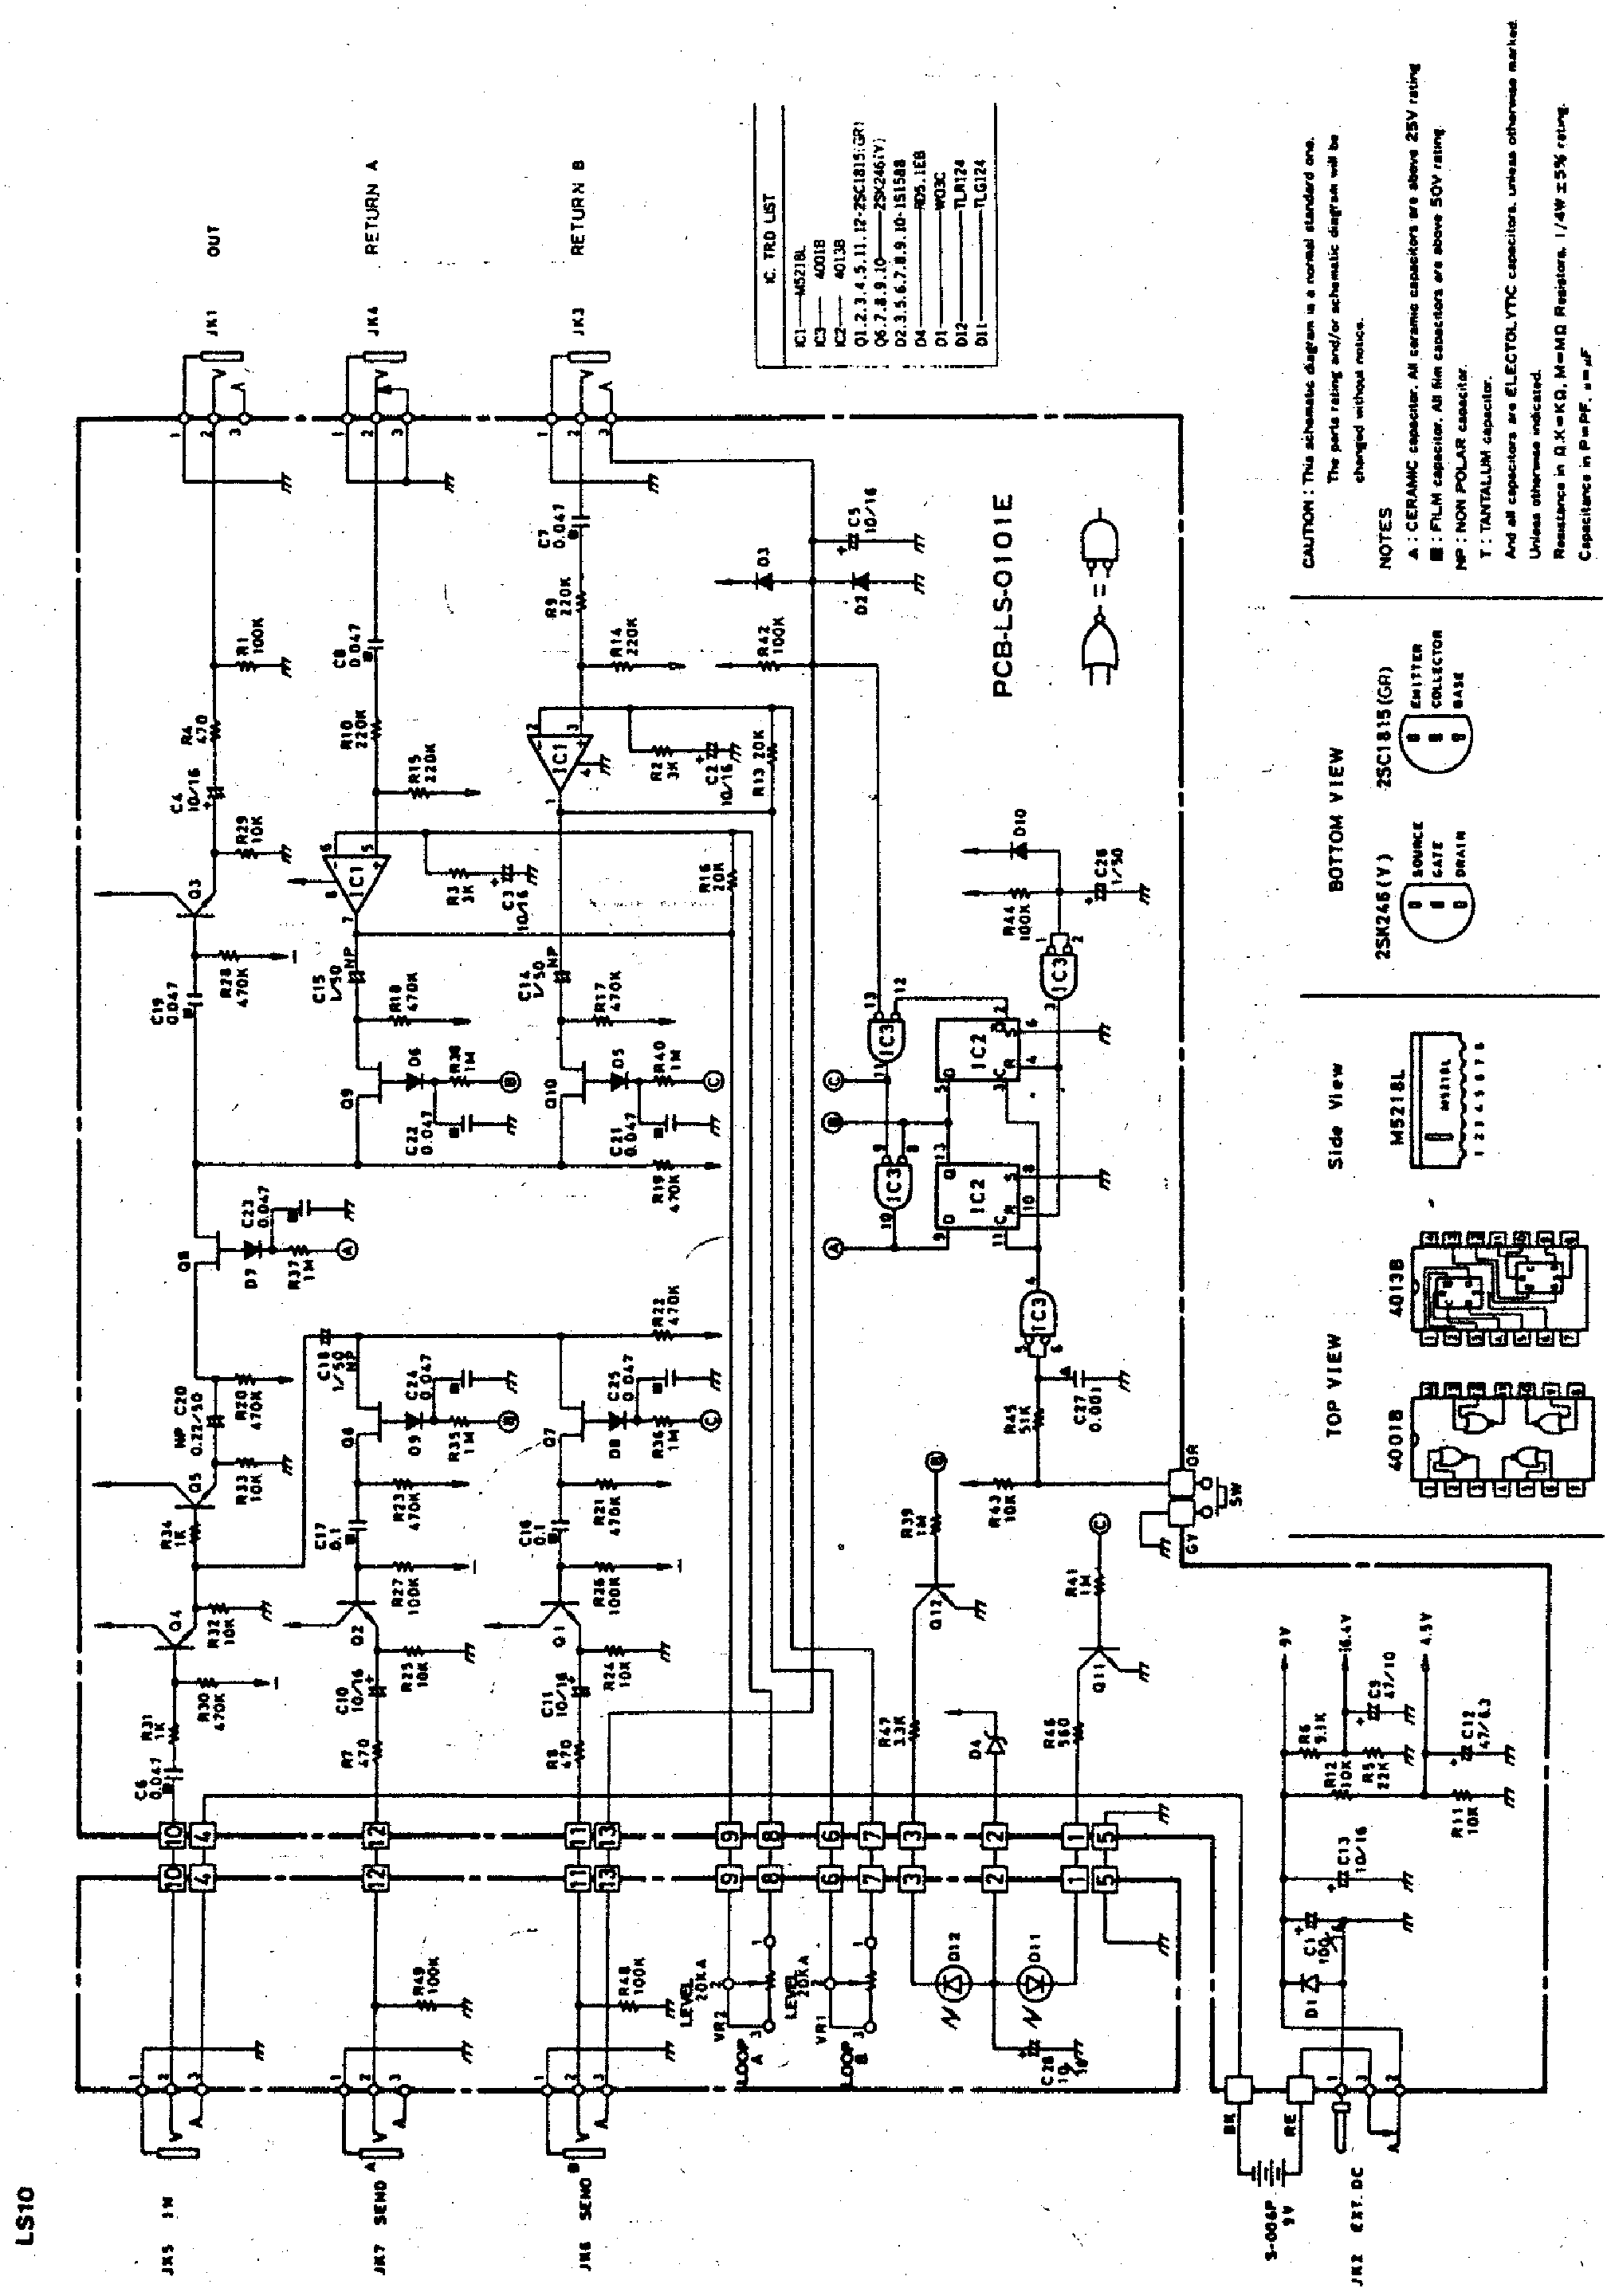 Ibanez Ls10 Sch Service Manual Download Schematics